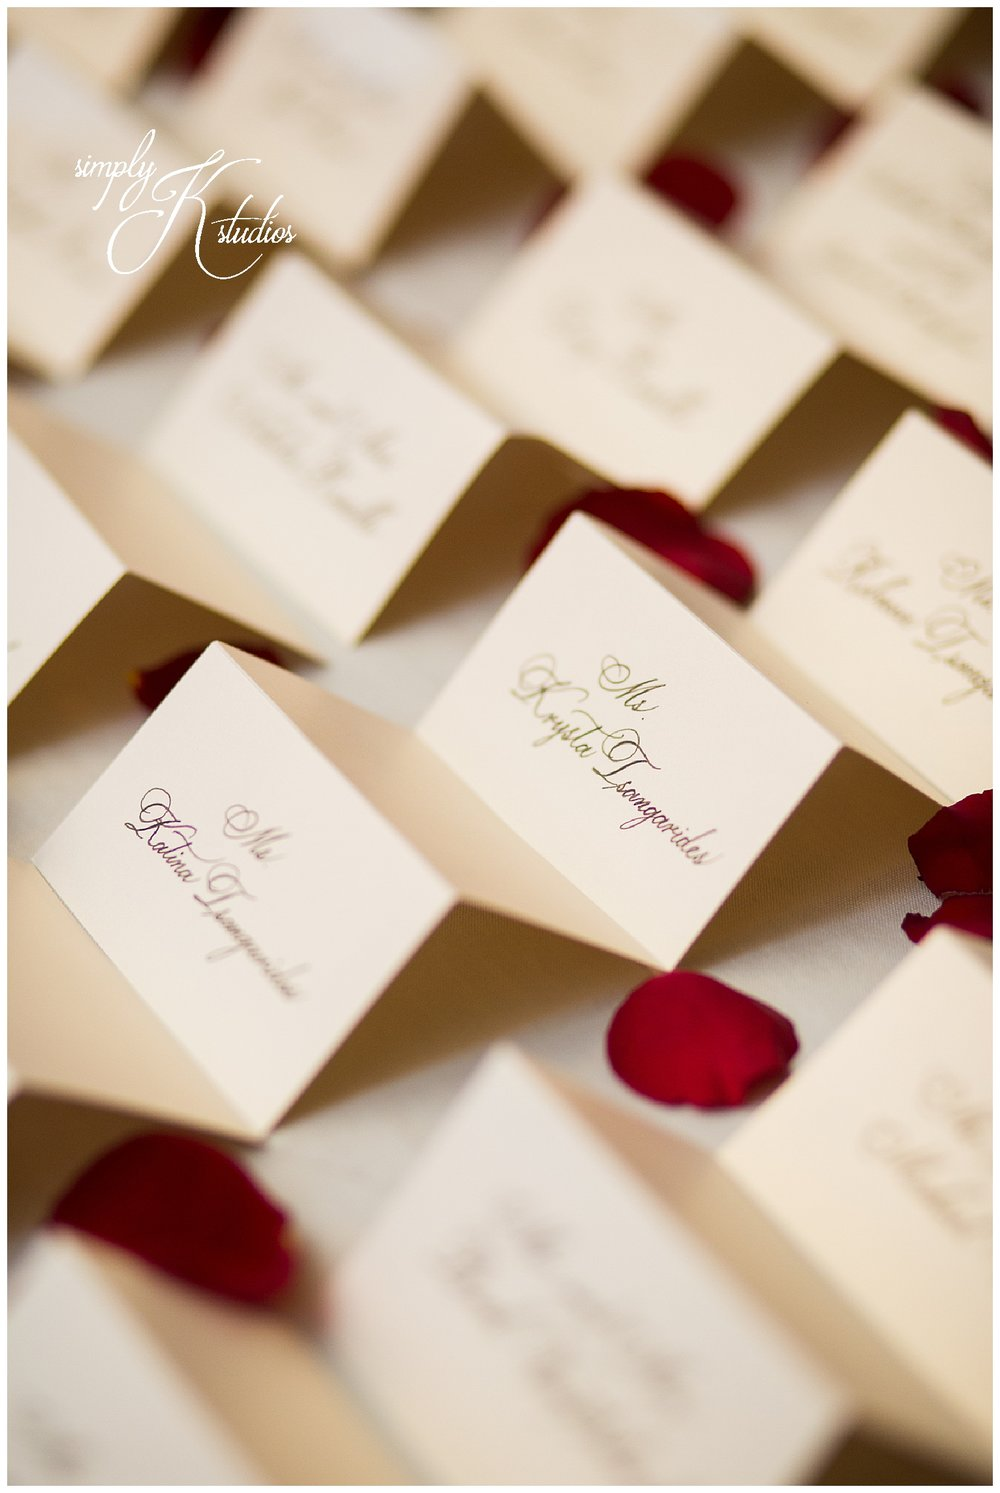 74 Elegant Escort Cards at a Wedding.jpg